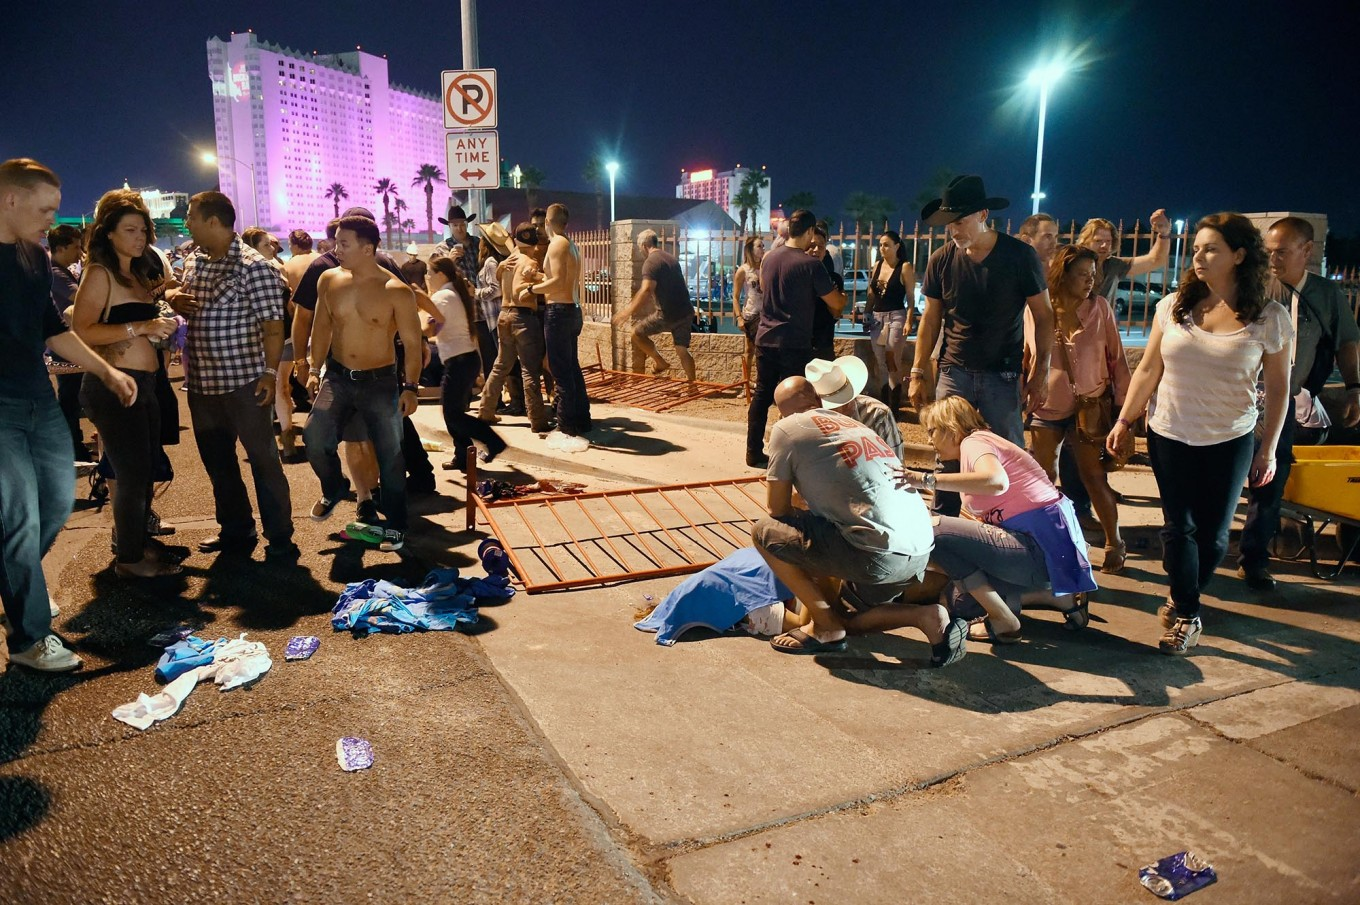 People tend to the wounded outside the Route 91 Harvest Country music festival grounds after an apparent shooting on October 1, 2017 in Las Vegas, Nevada. There are reports of an active shooter around the Mandalay Bay Resort and Casino. AFP/Getty Images/David Becker